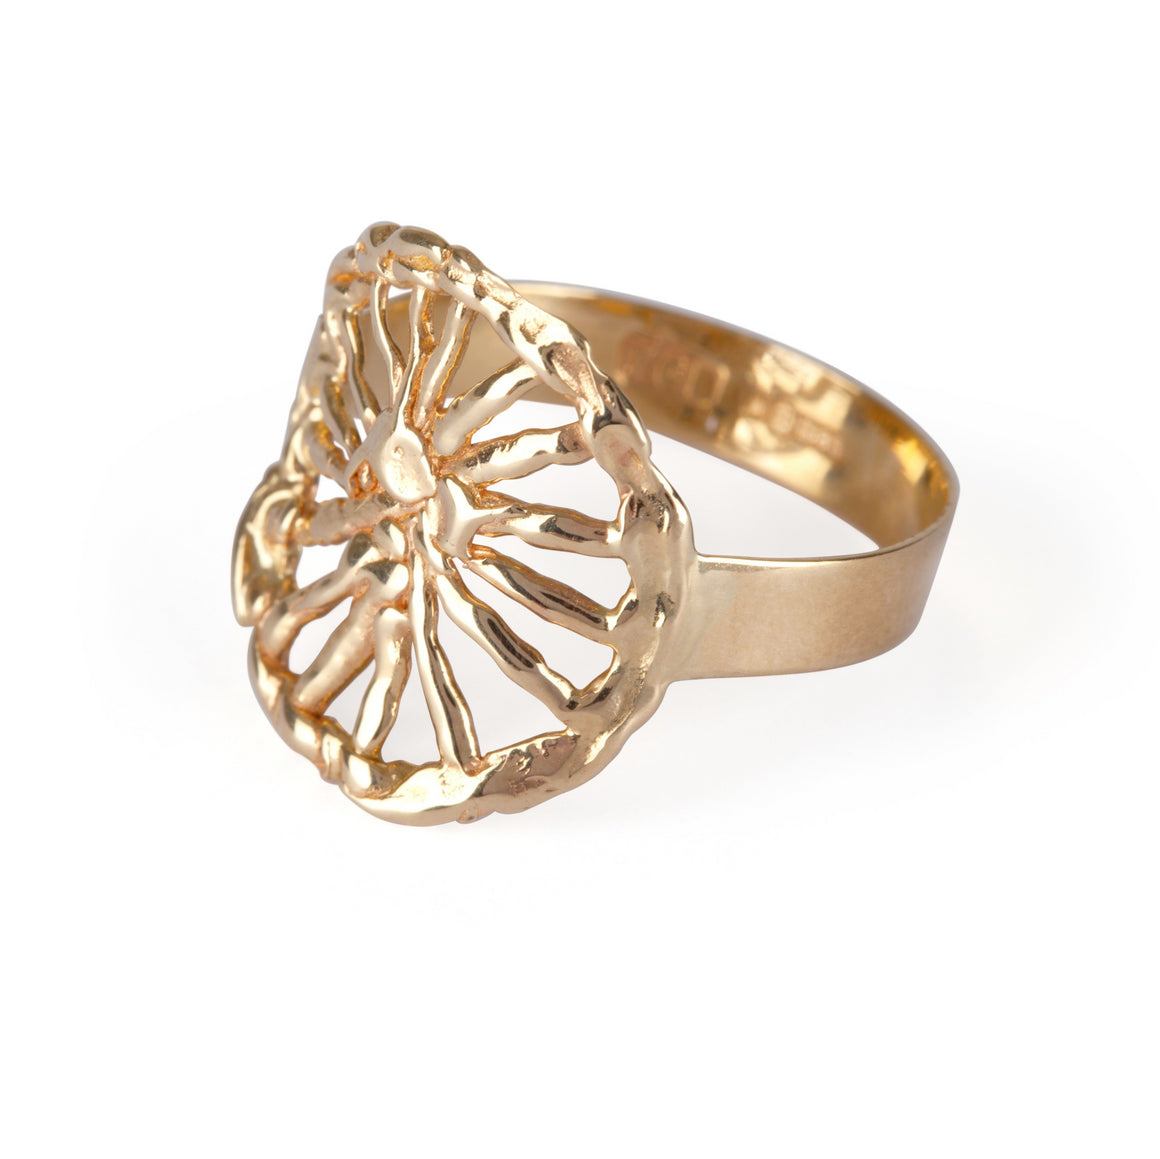 Irish jewellery designer ella green 14k Yellow Gold ring